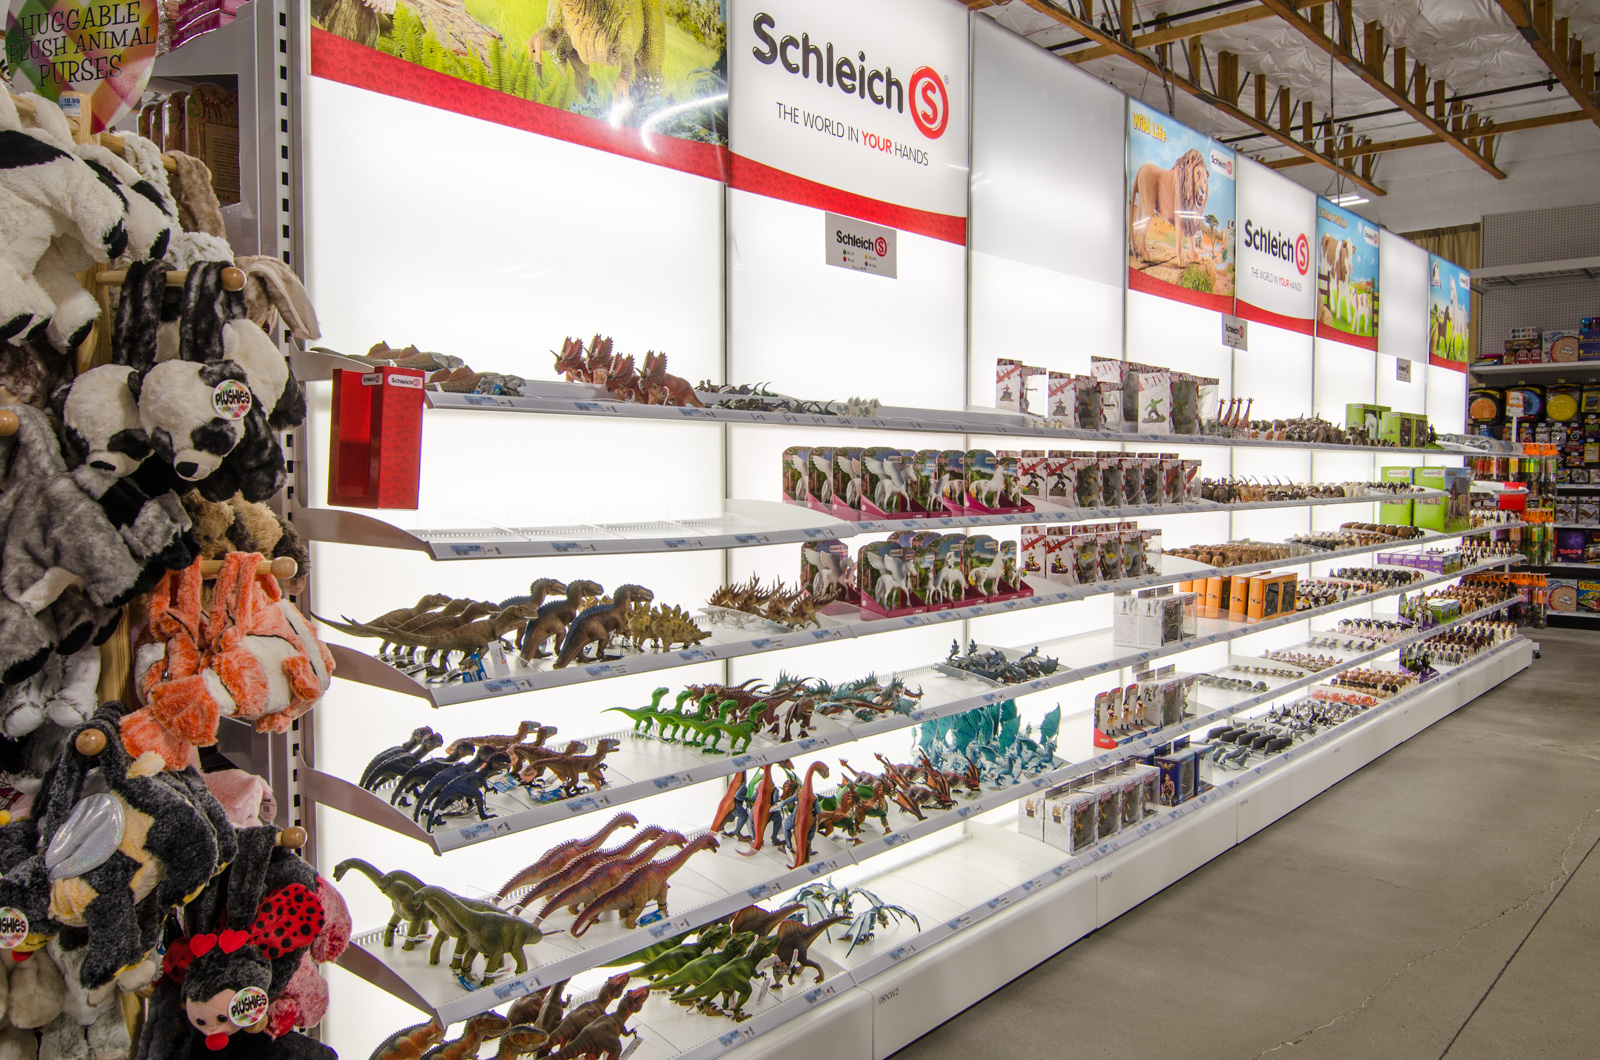 Schleich animals and figurines.